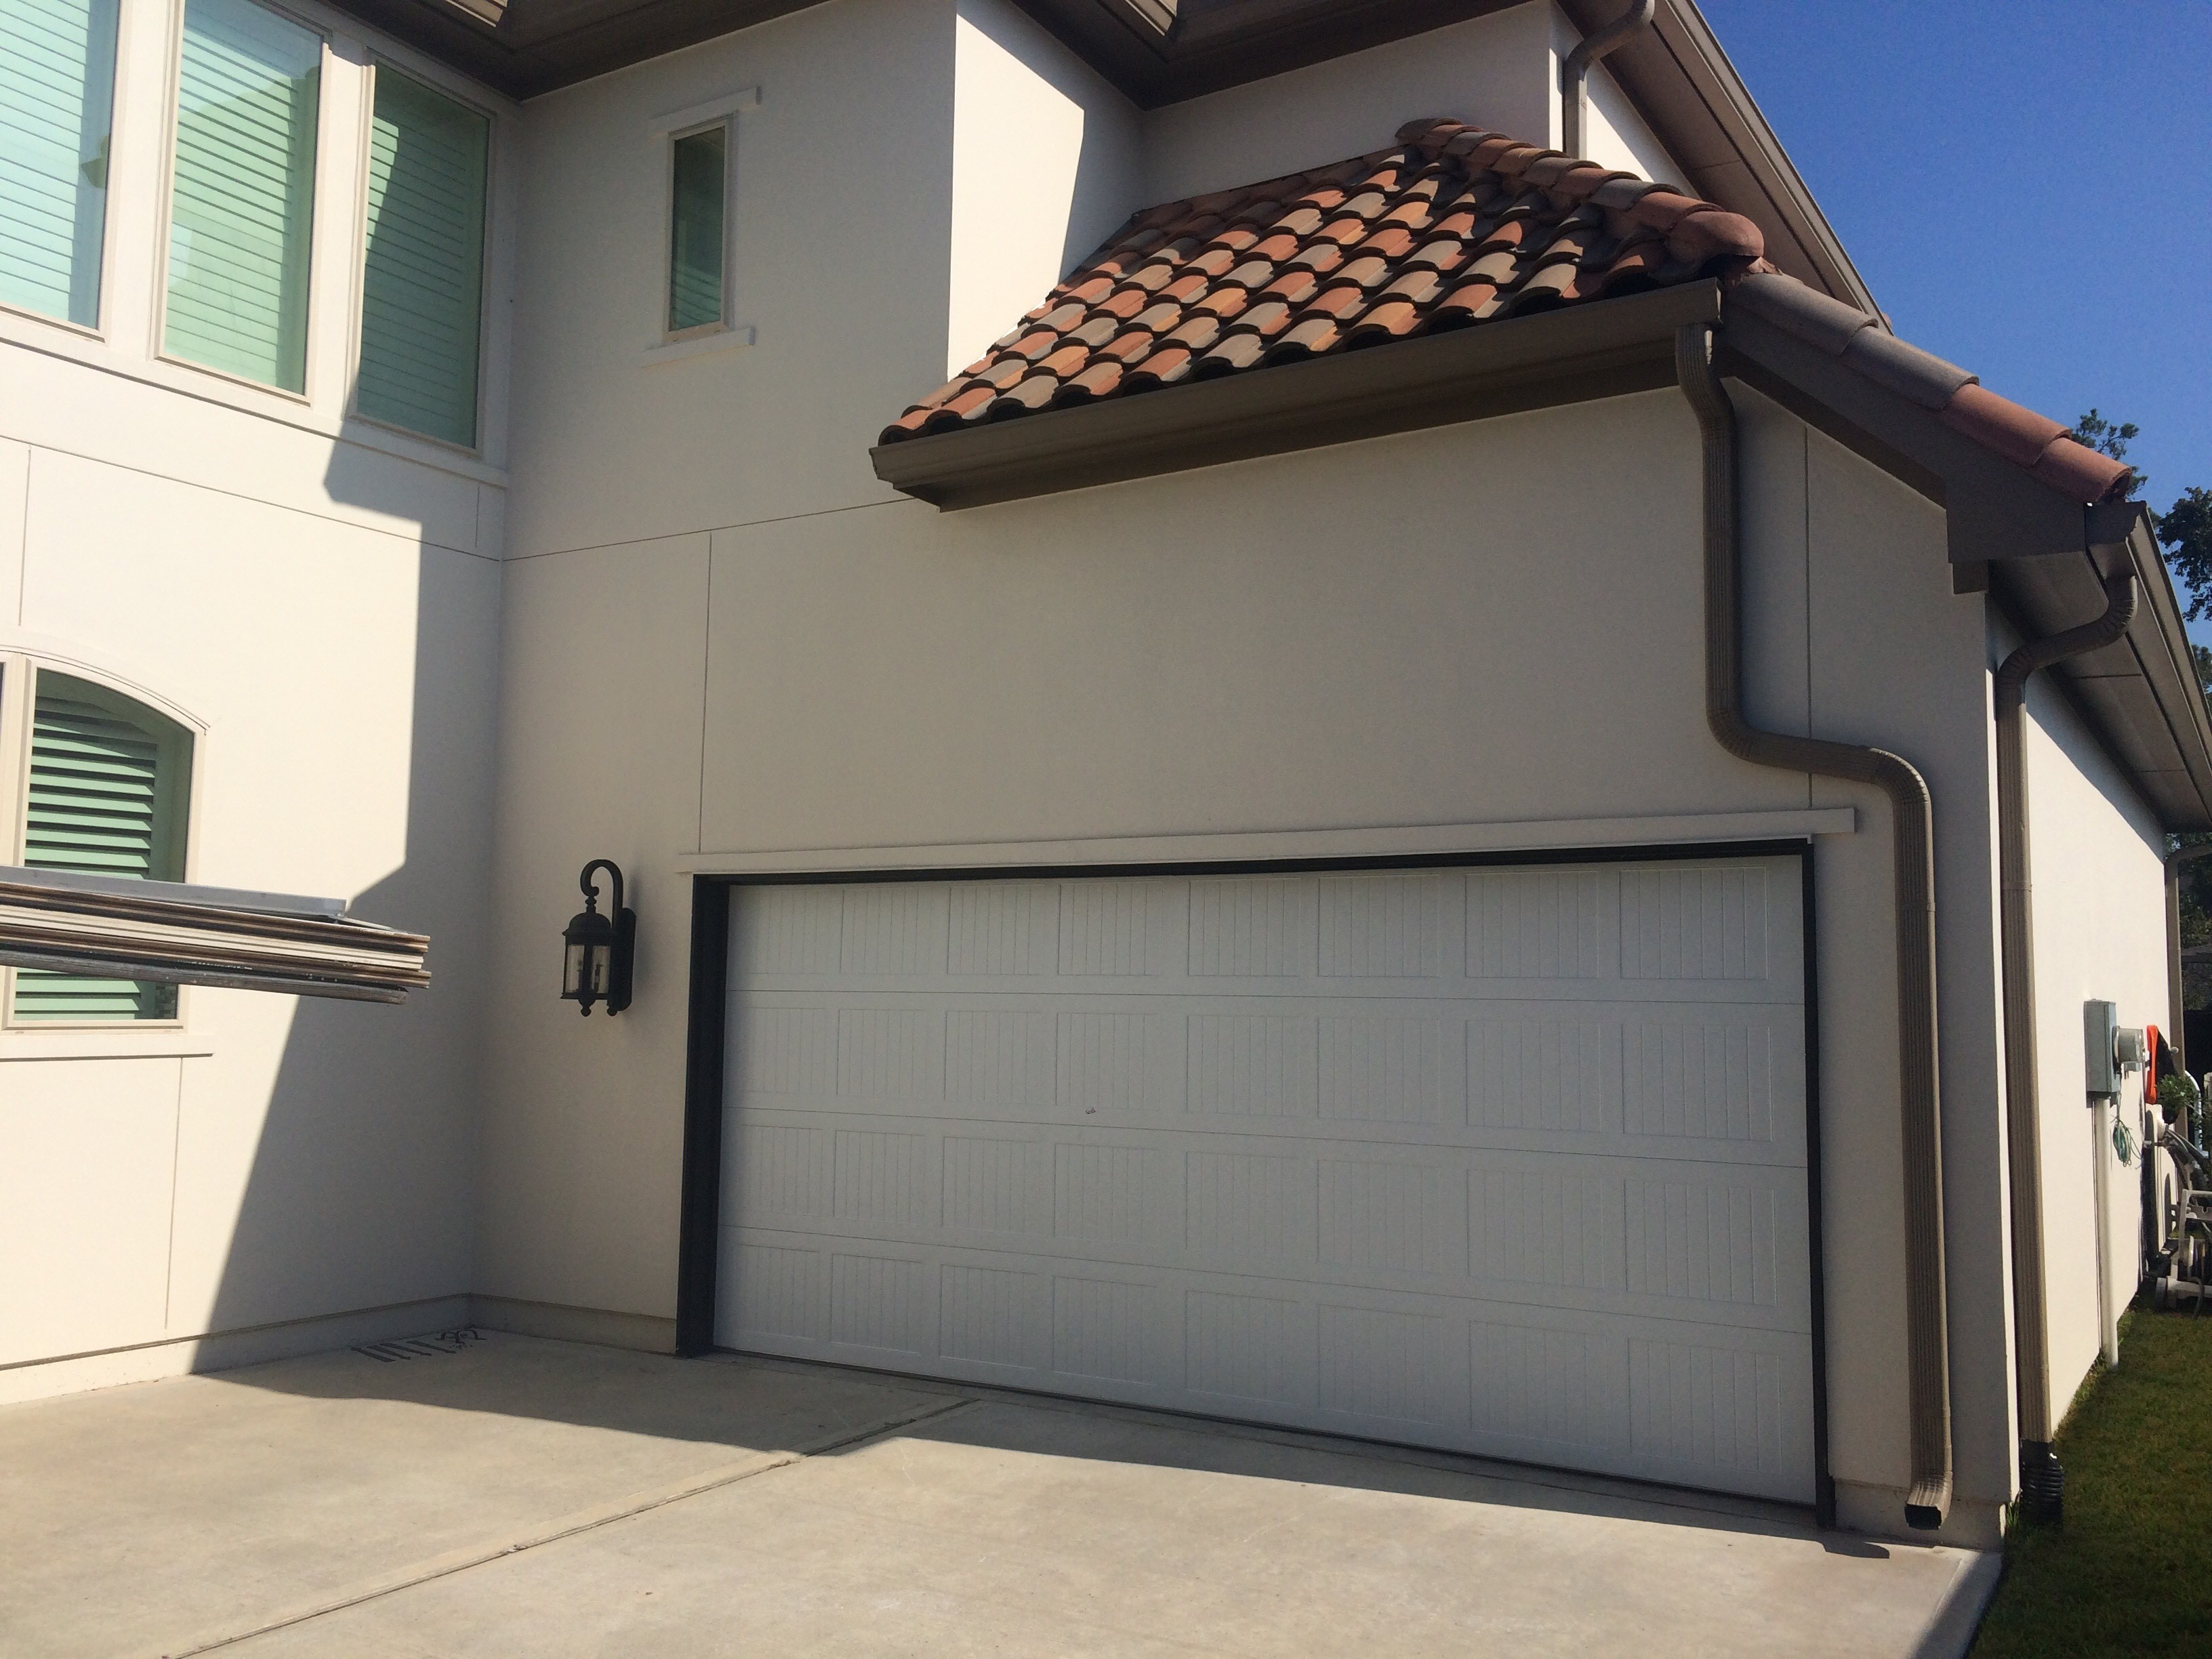 Texas Best Garage Door Co. image 7